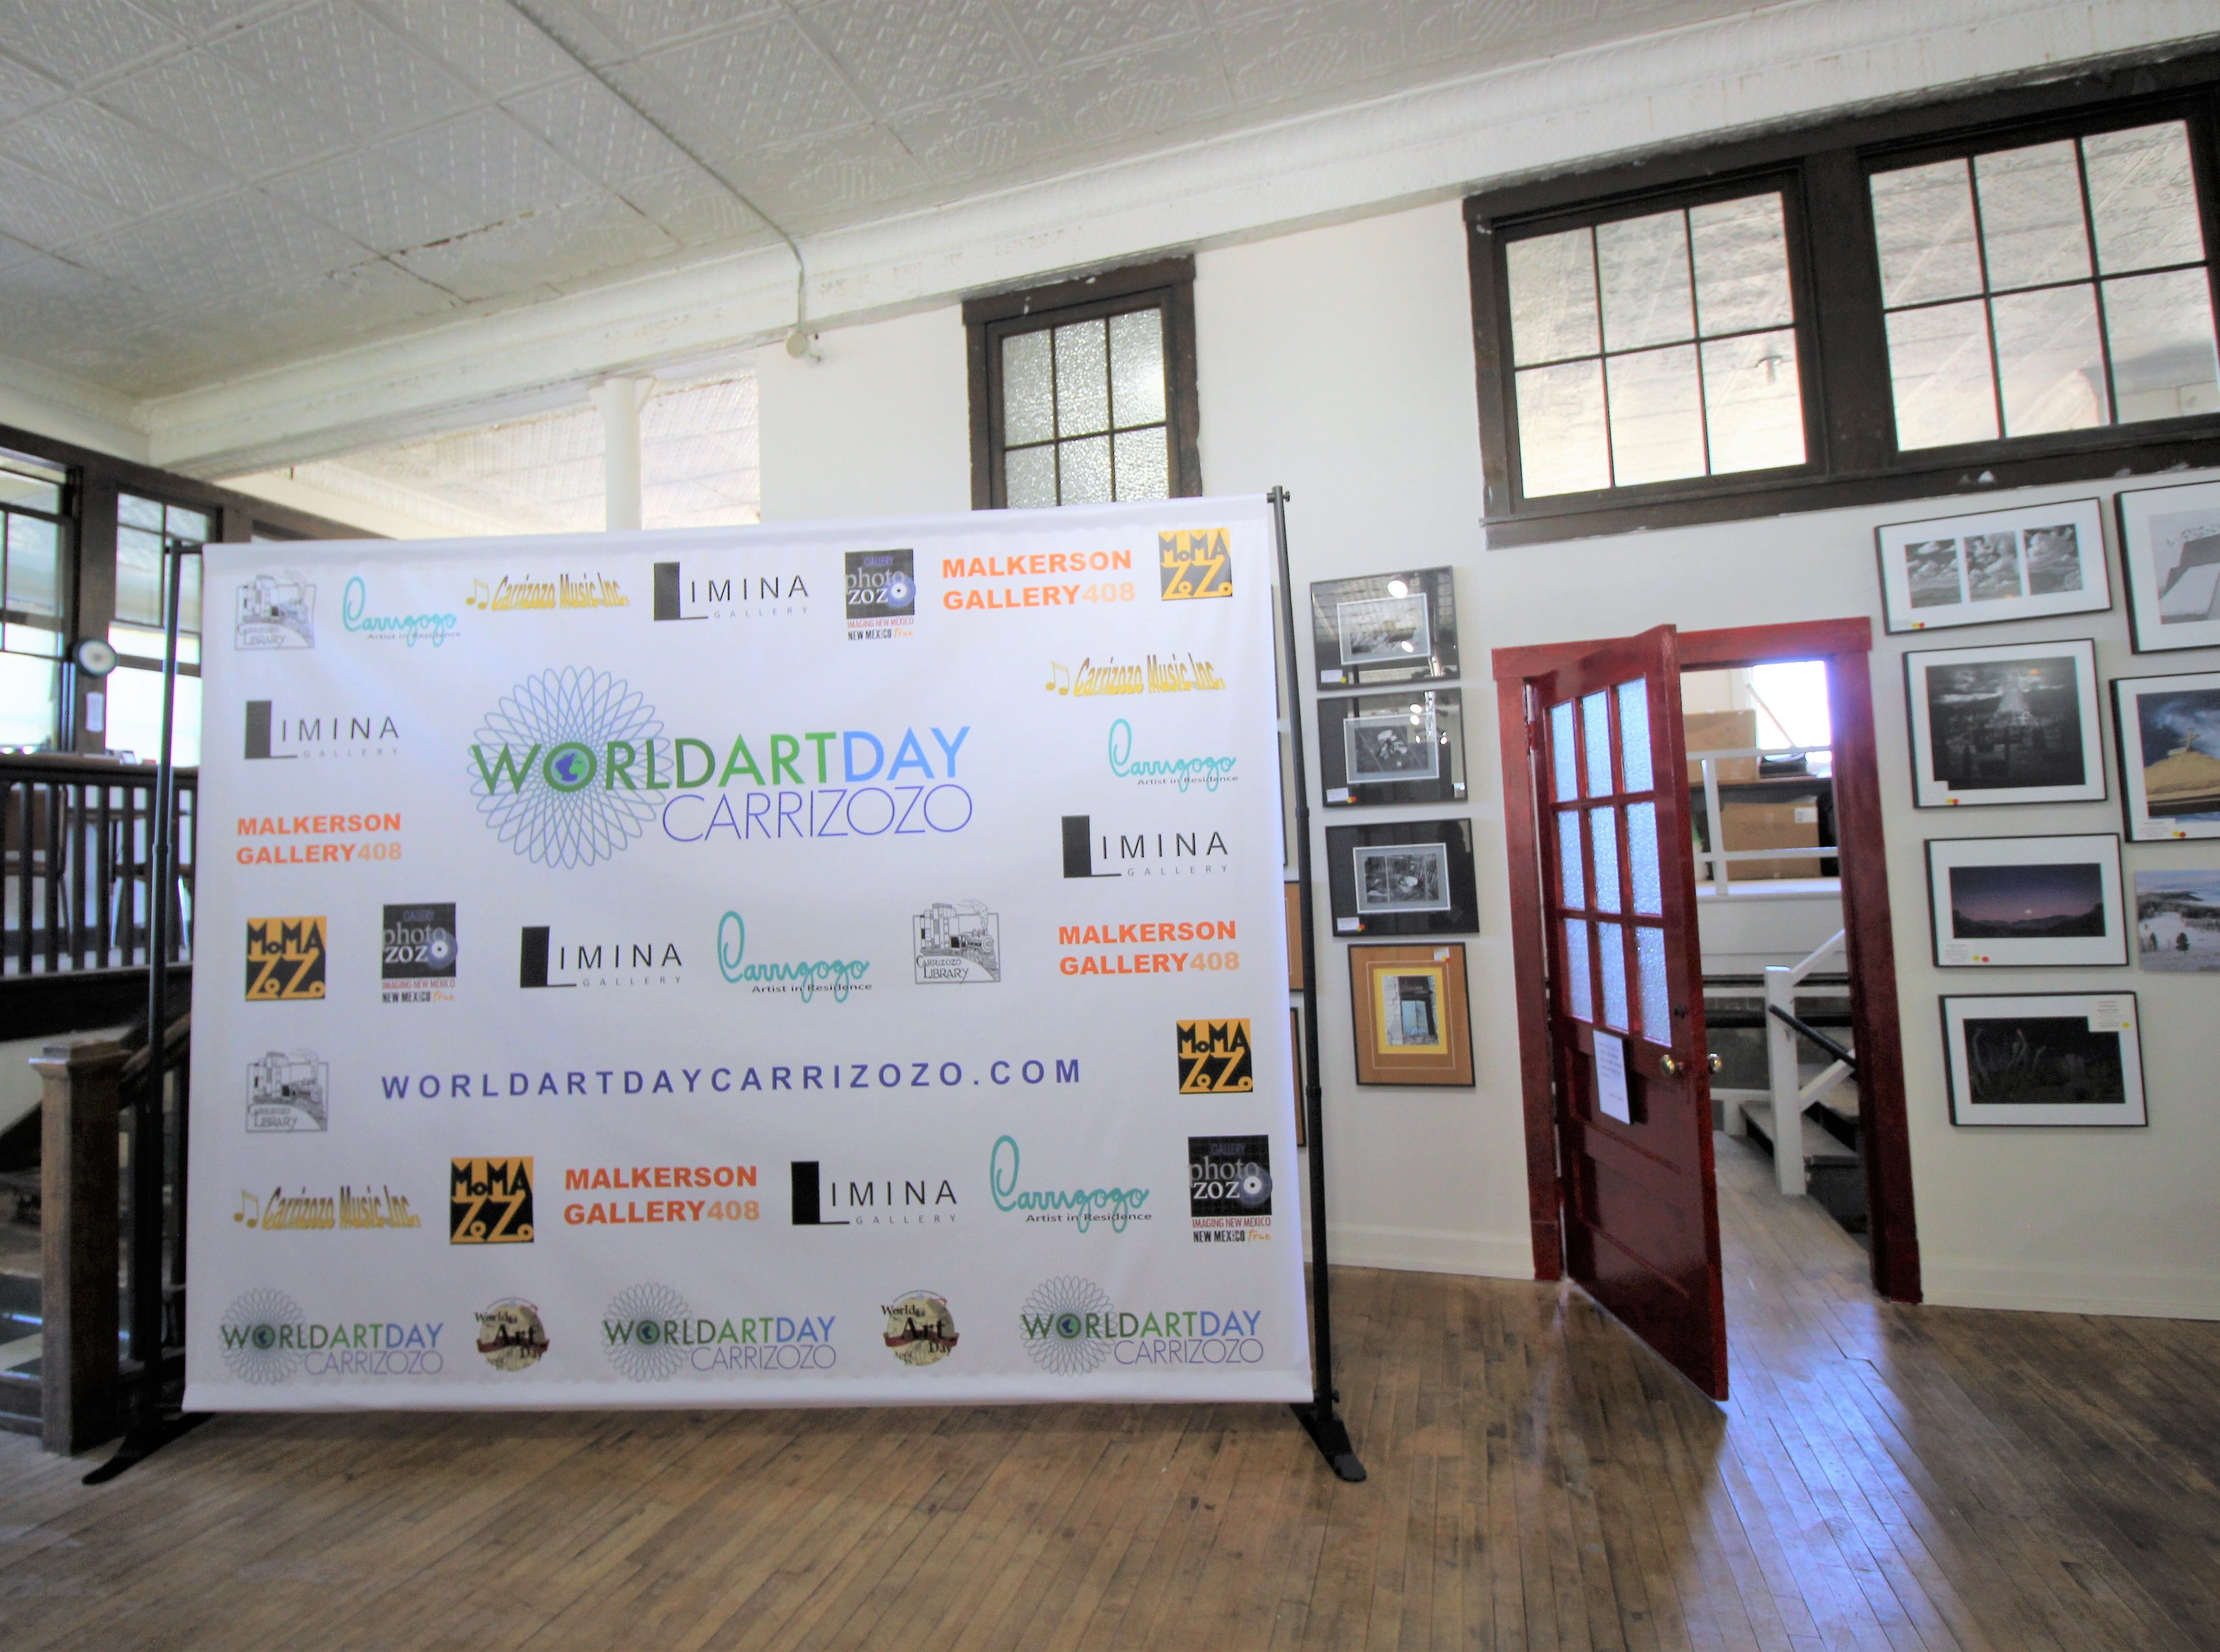 The Carrizozo art district celebrated World Art Day showcasing photographers, musicians, sculptors and painters. The two day event offered guest to speak with the artists and to view their works. The event was free to the public.